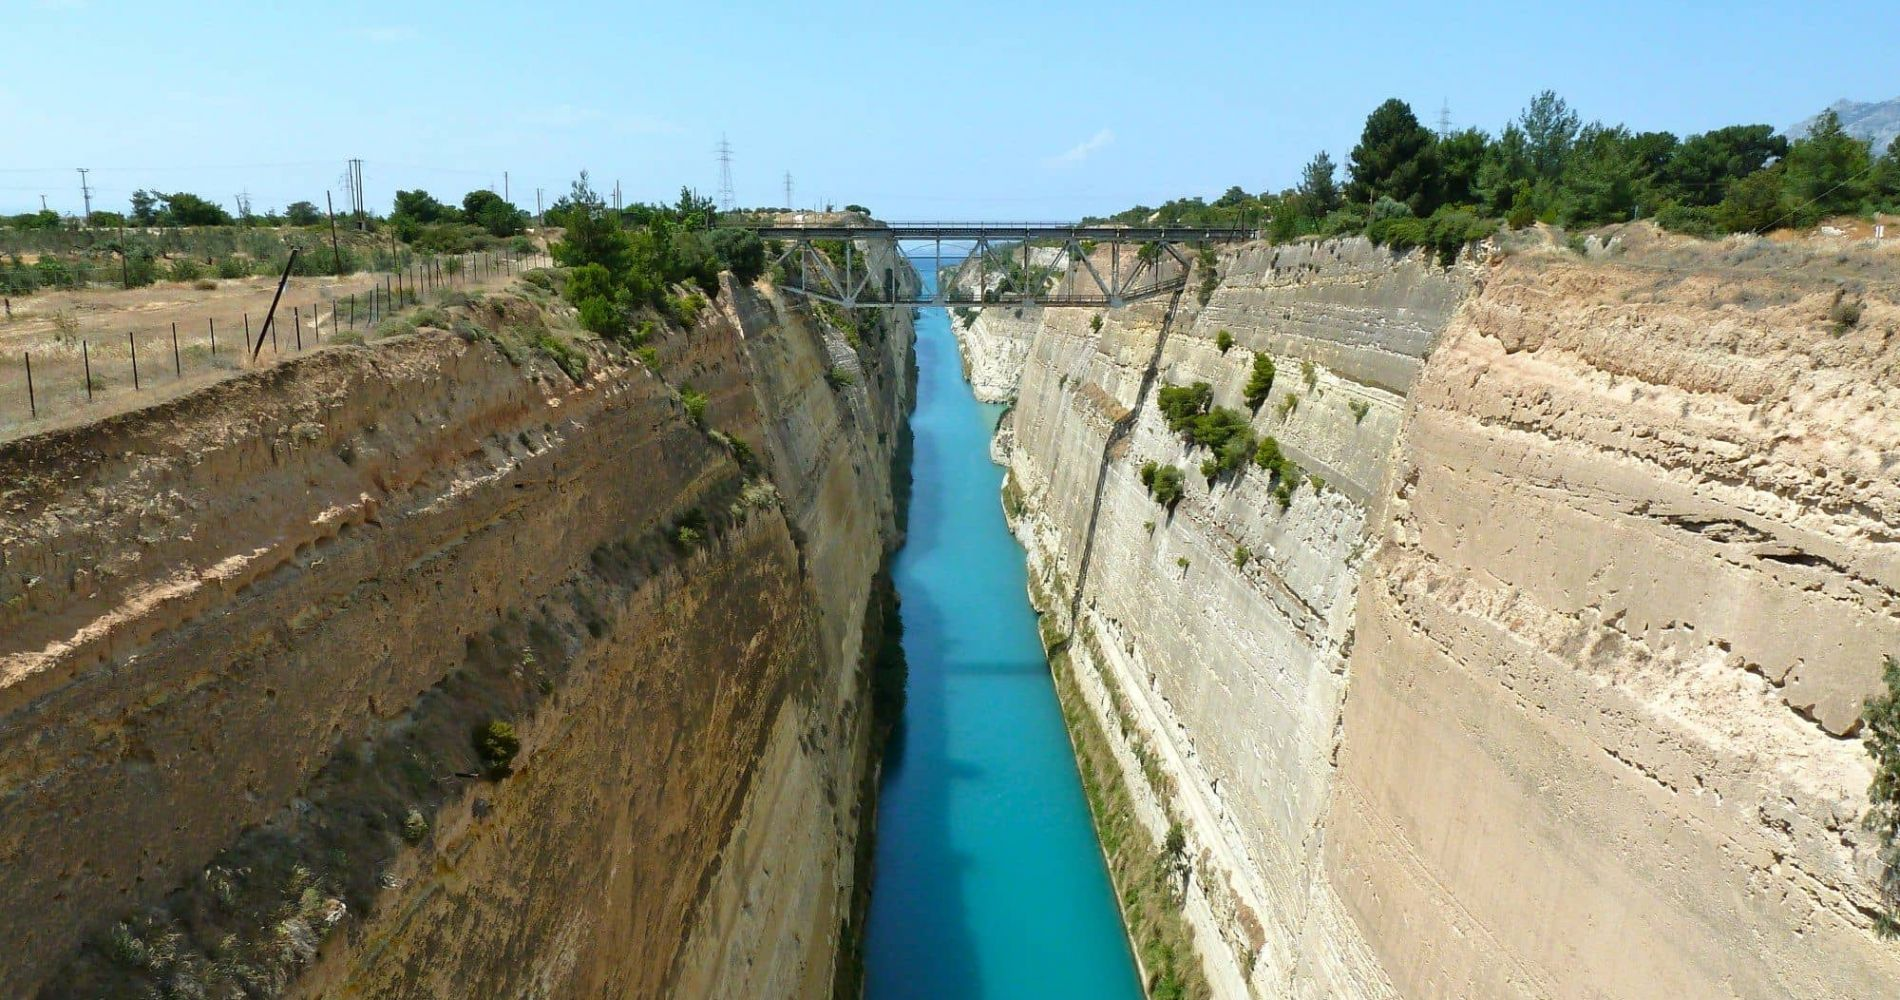 Thrilling  Bungee Jump in Corinth Canal in Greece